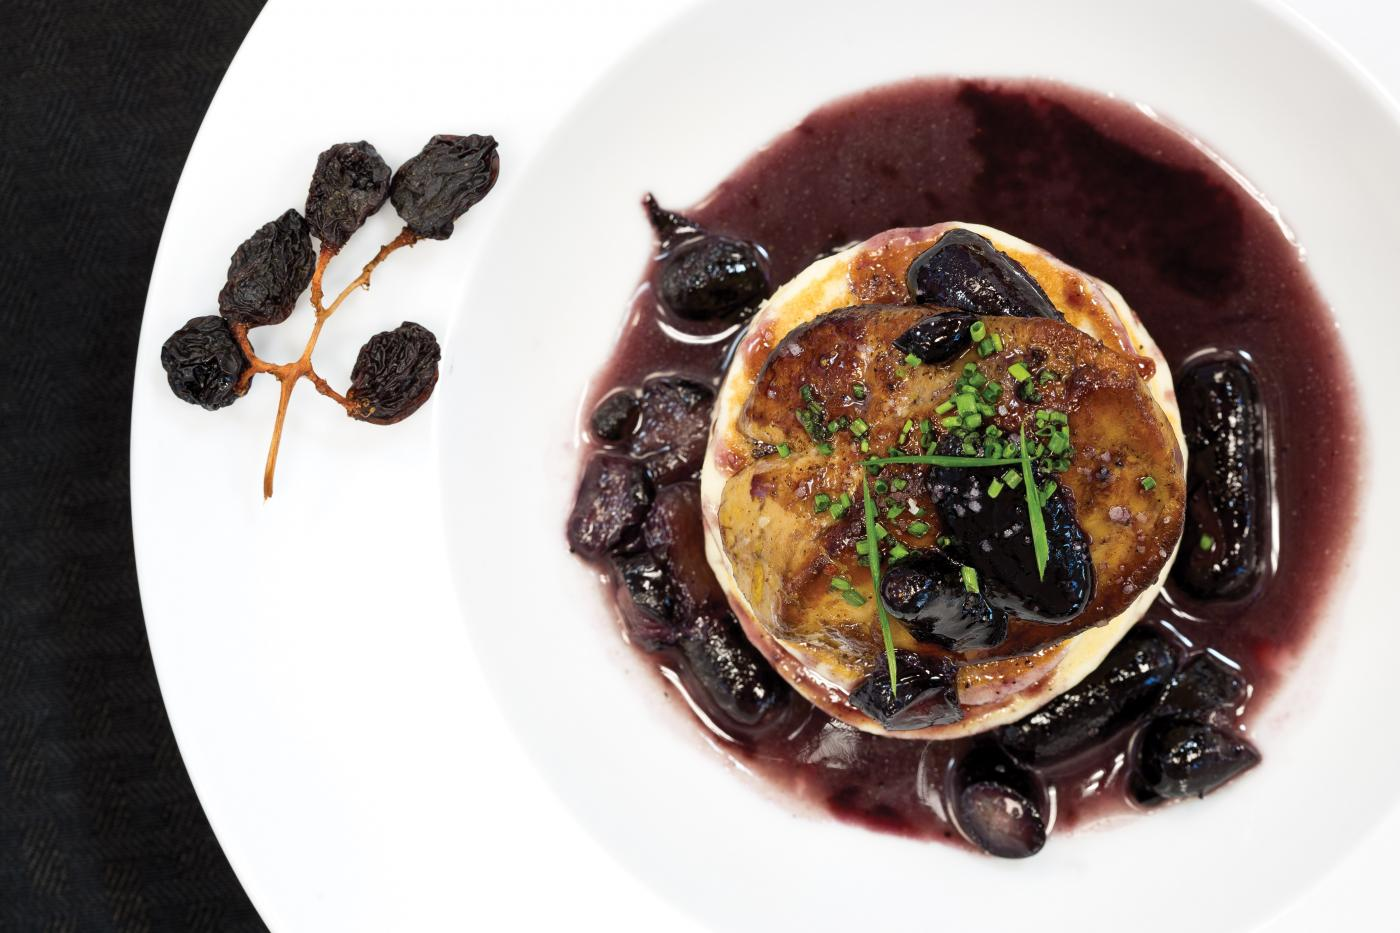 Griddle me this: Artisanal Foods'  pancakes with foie gras